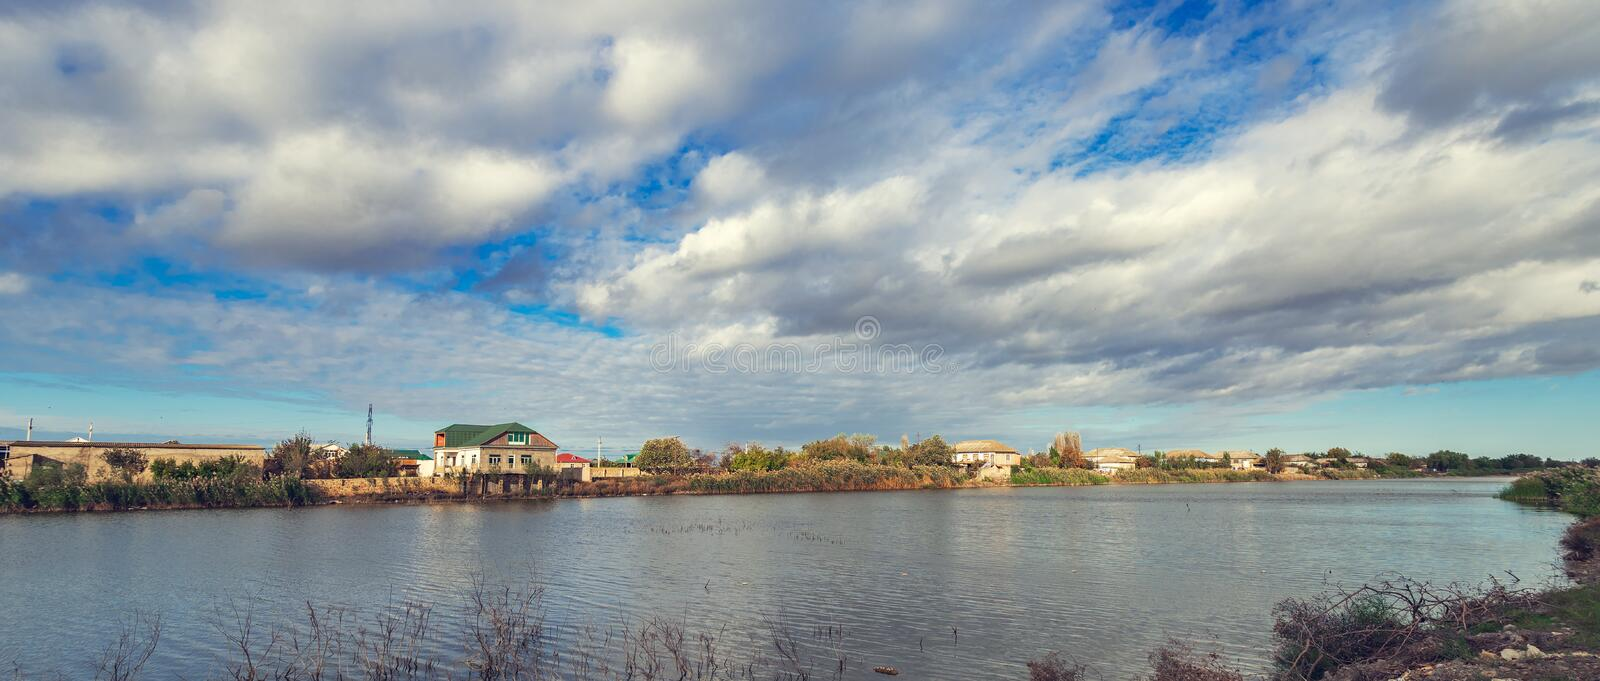 Bed of the flat river stock image